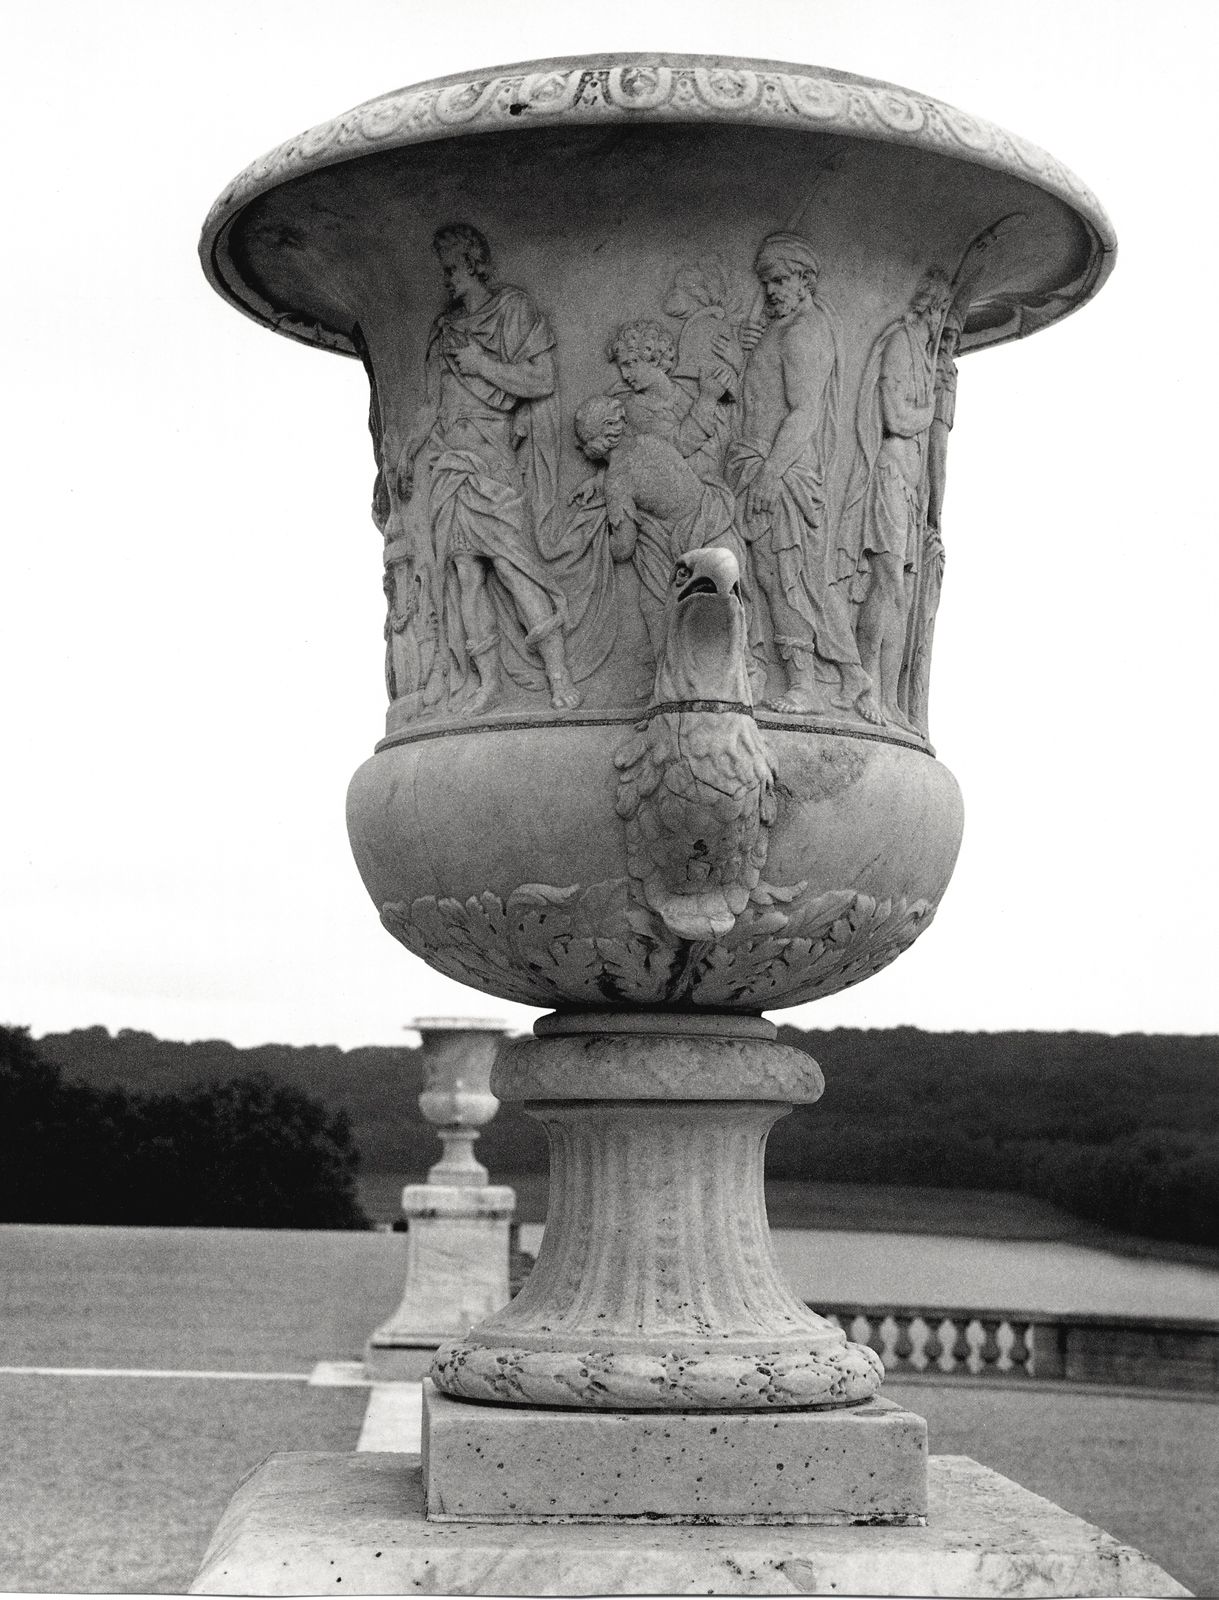 Versailles urn with eagle